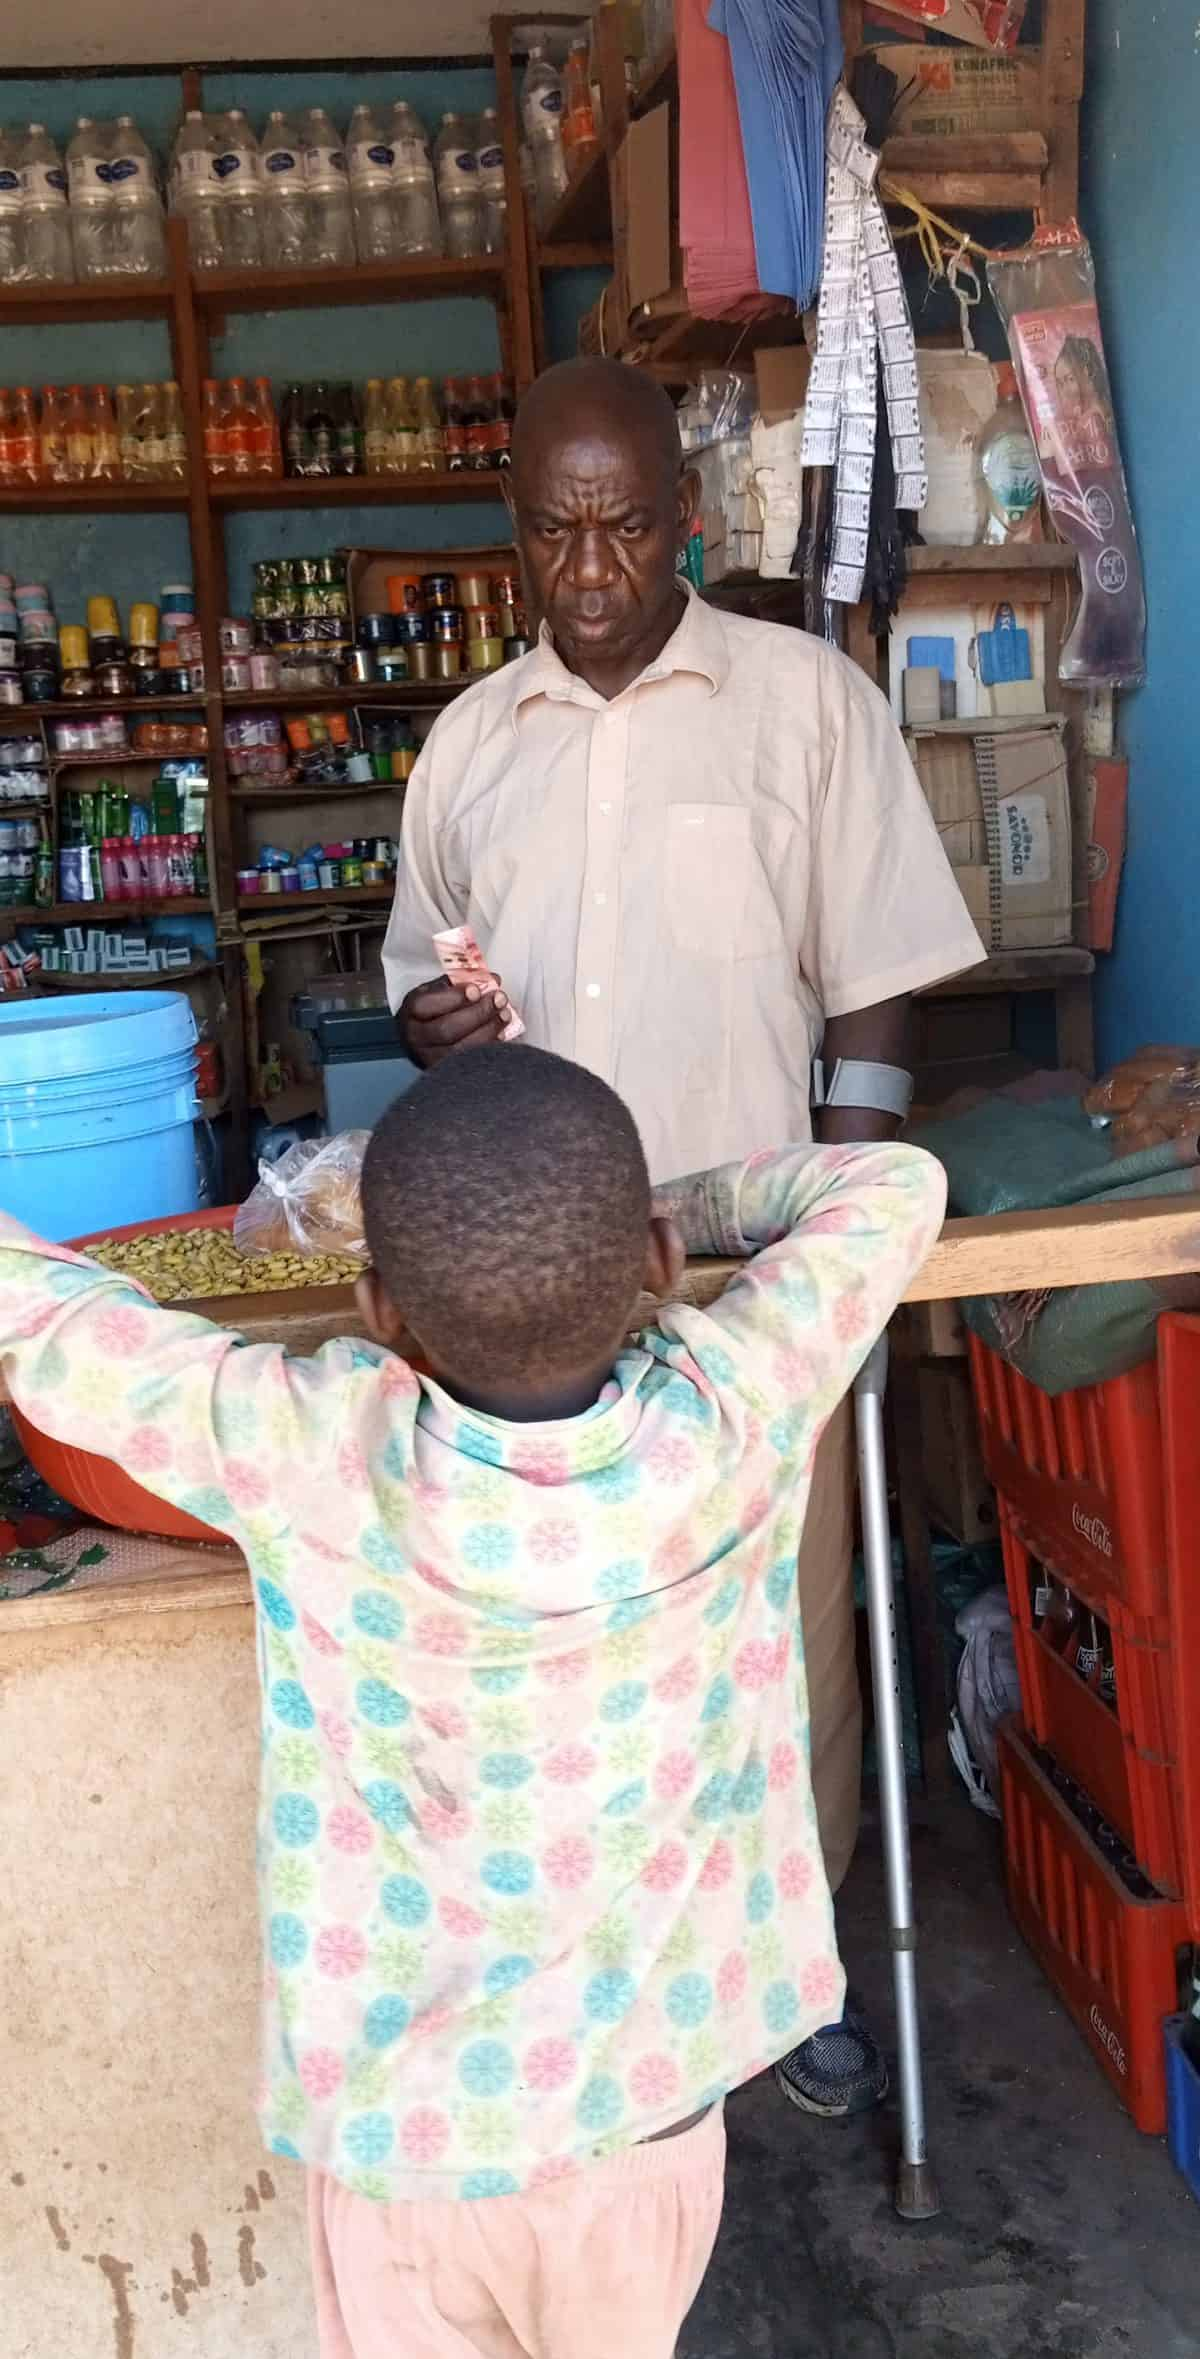 A man stands behind a counter in a store; a young boy looks over the counter on the other side.